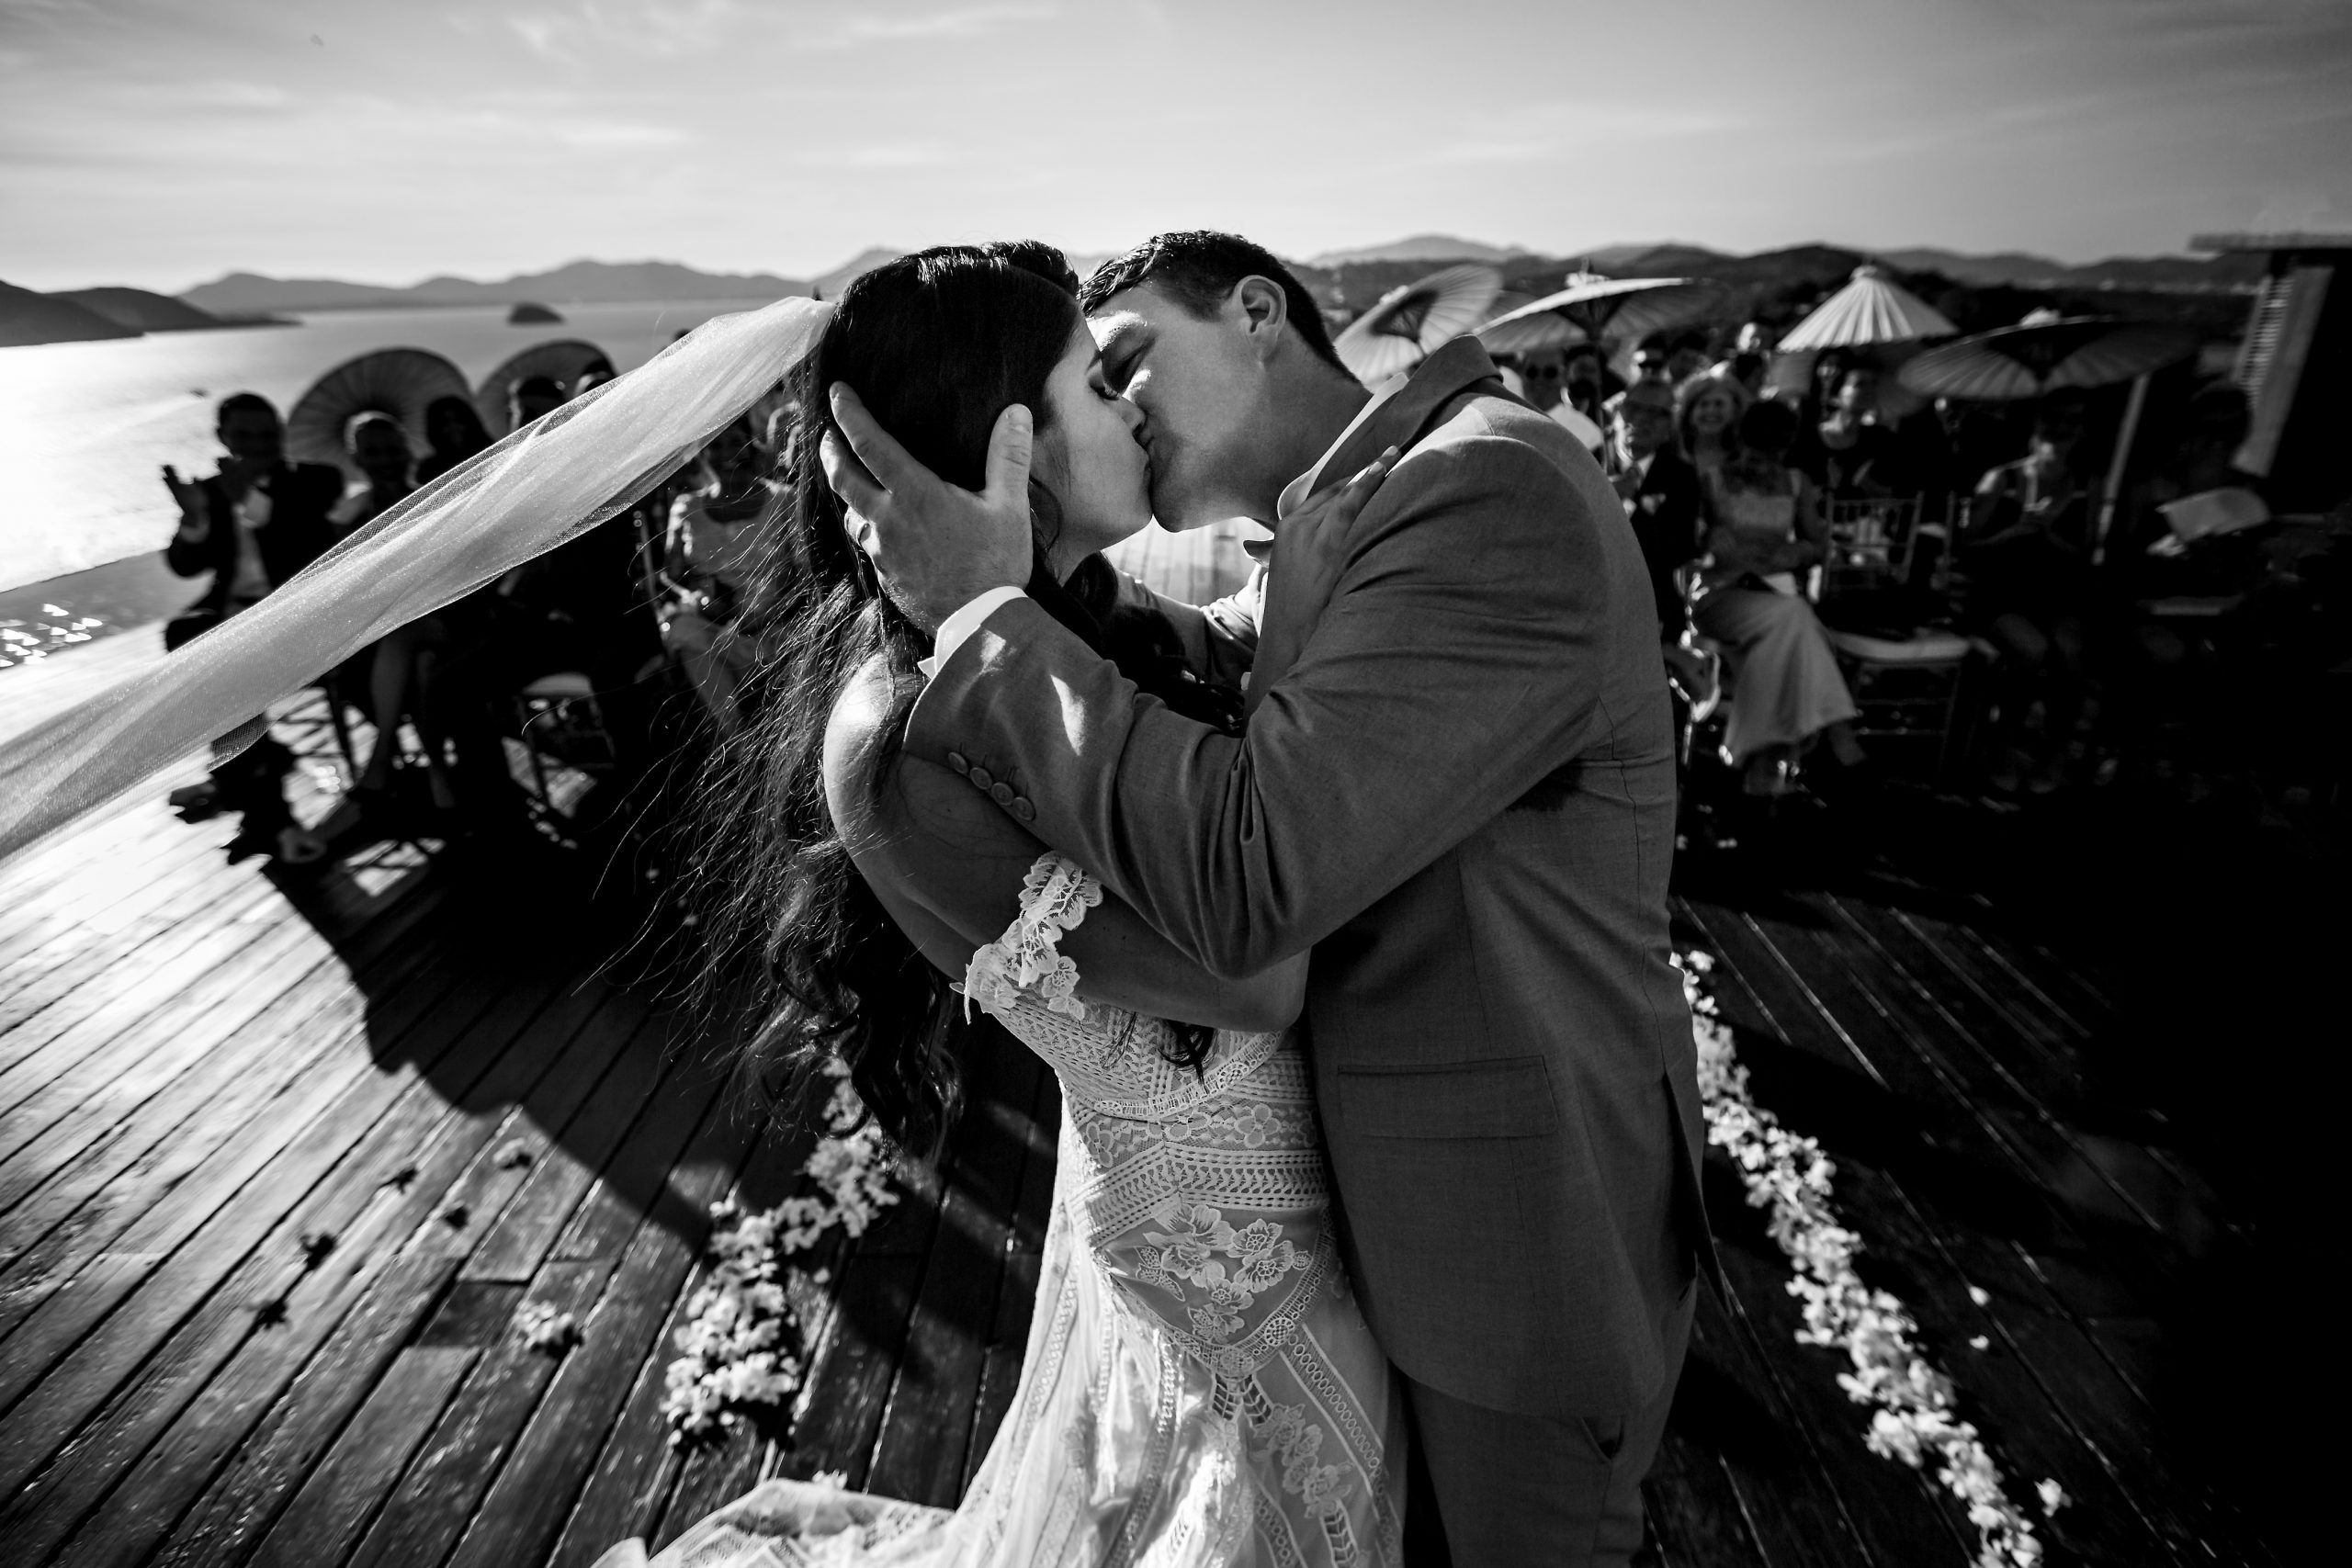 Groom kisses bride during the wedding ceremony